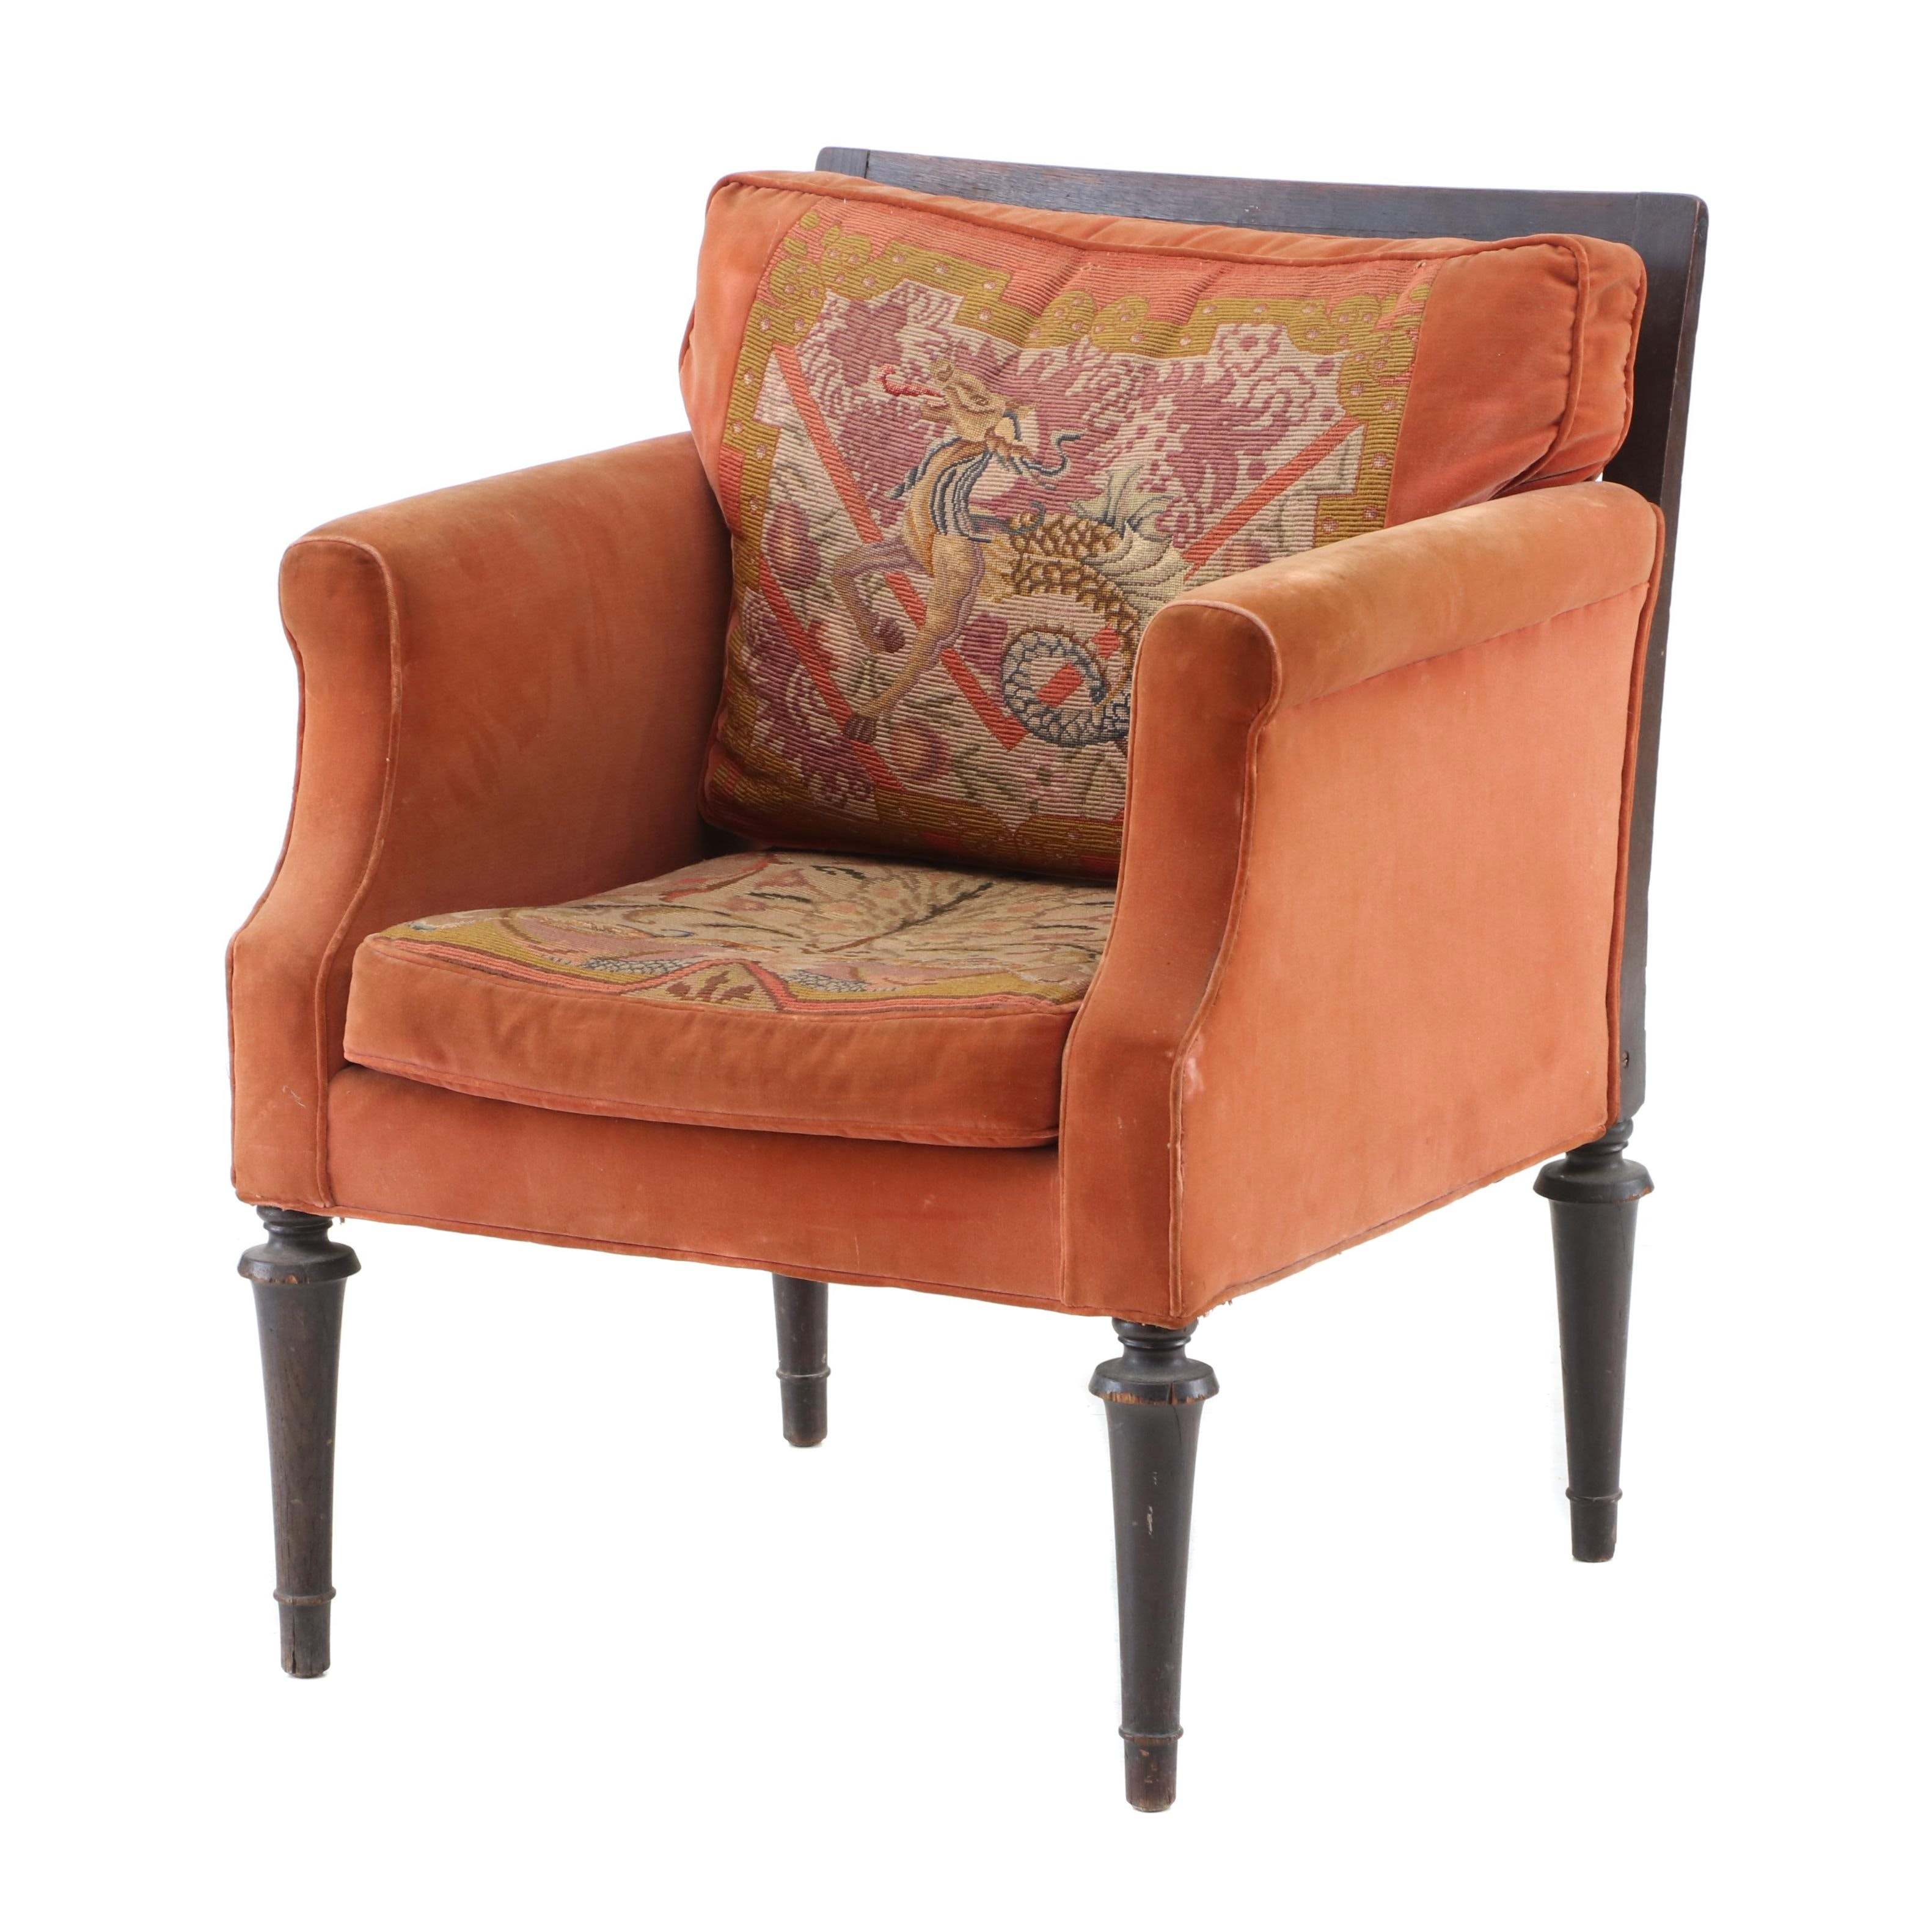 Late Victorian Upholstered and Mahogany Armchair, Early 20th Century